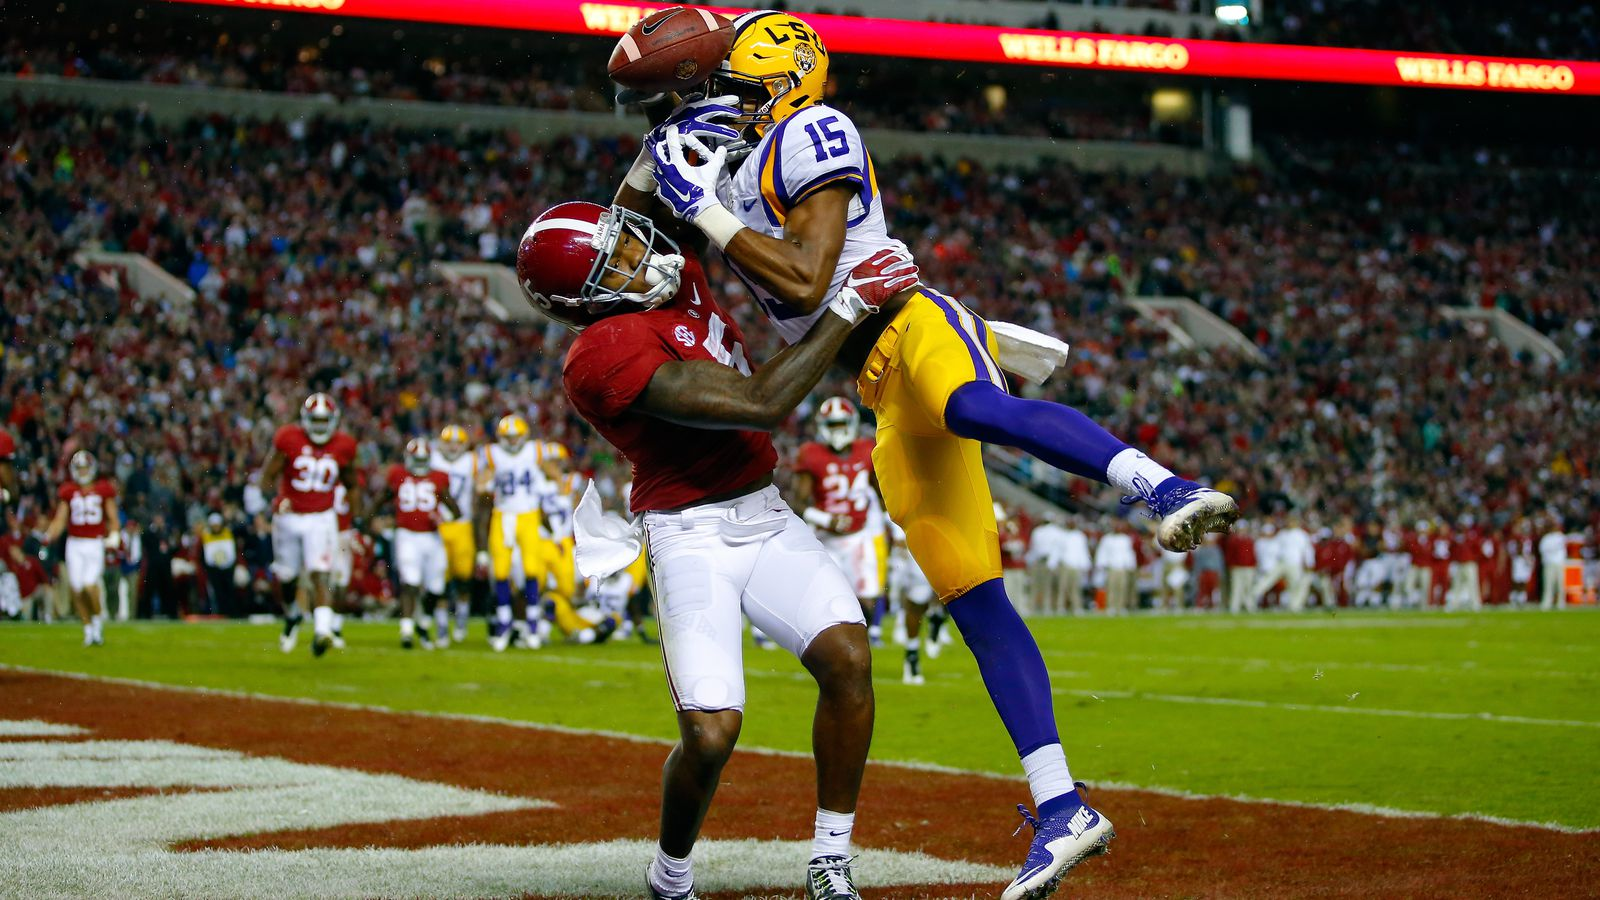 Alabama Vs Lsu Live Stream 2016 How To Watch Online And